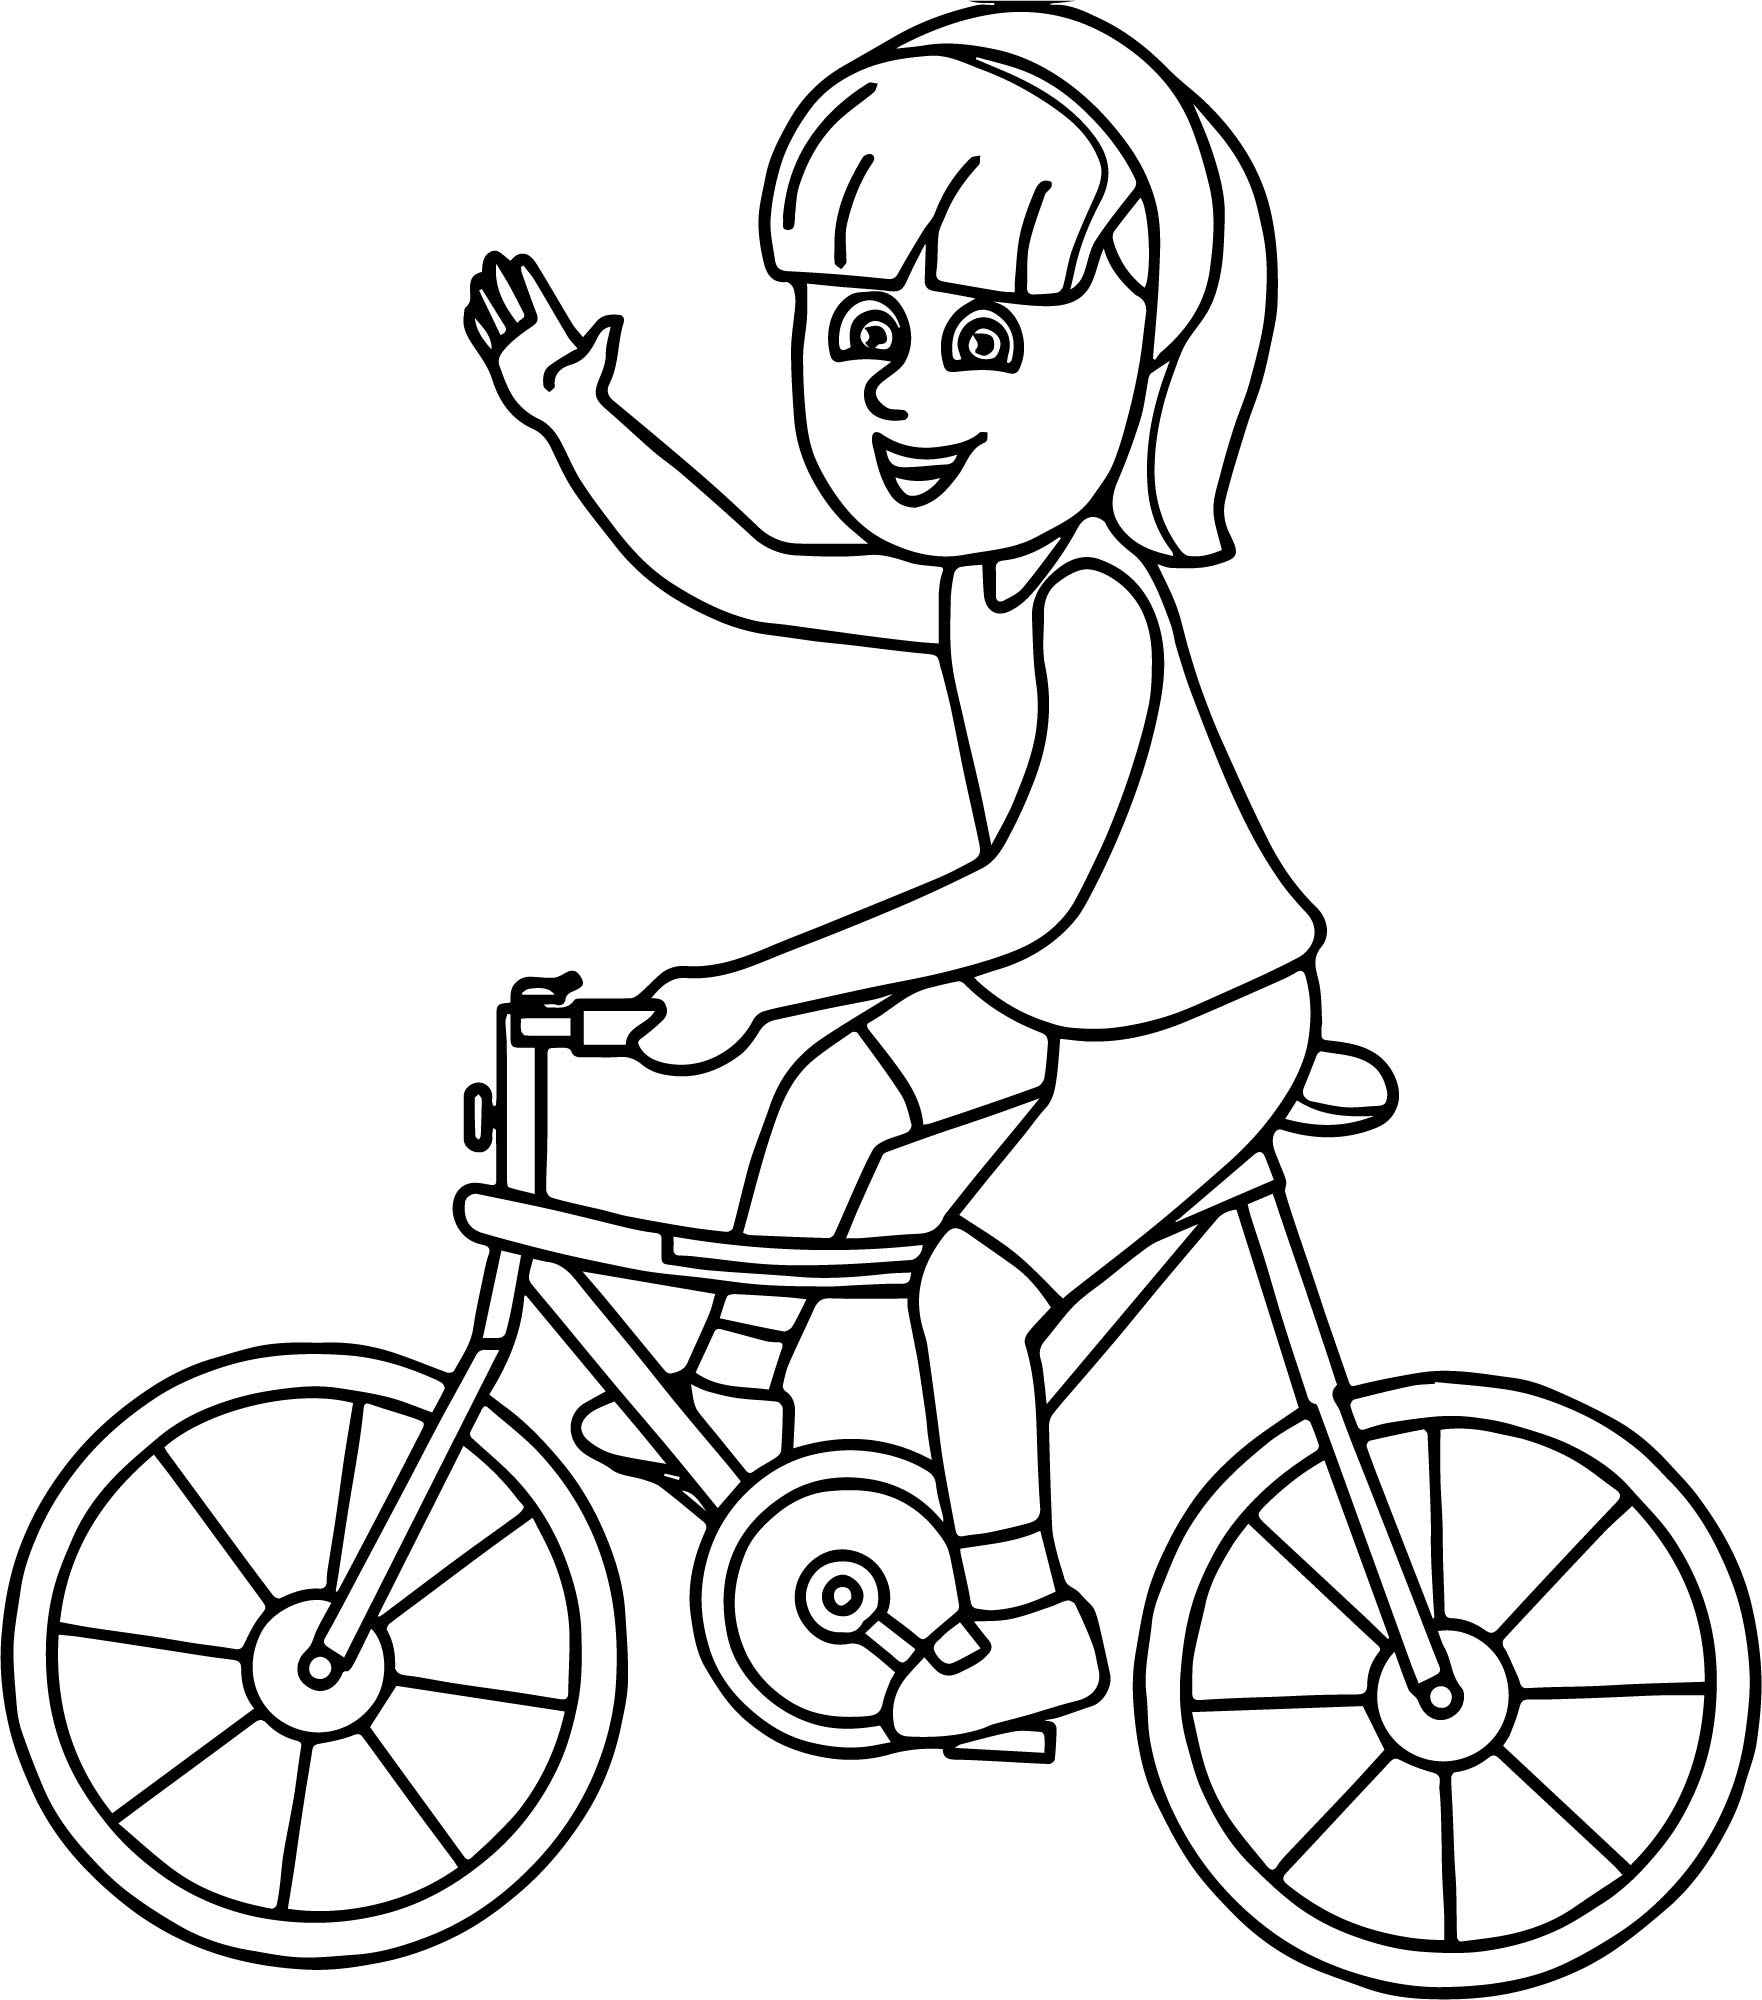 coloring pages bikes street bike coloring pages at getdrawings free download coloring bikes pages